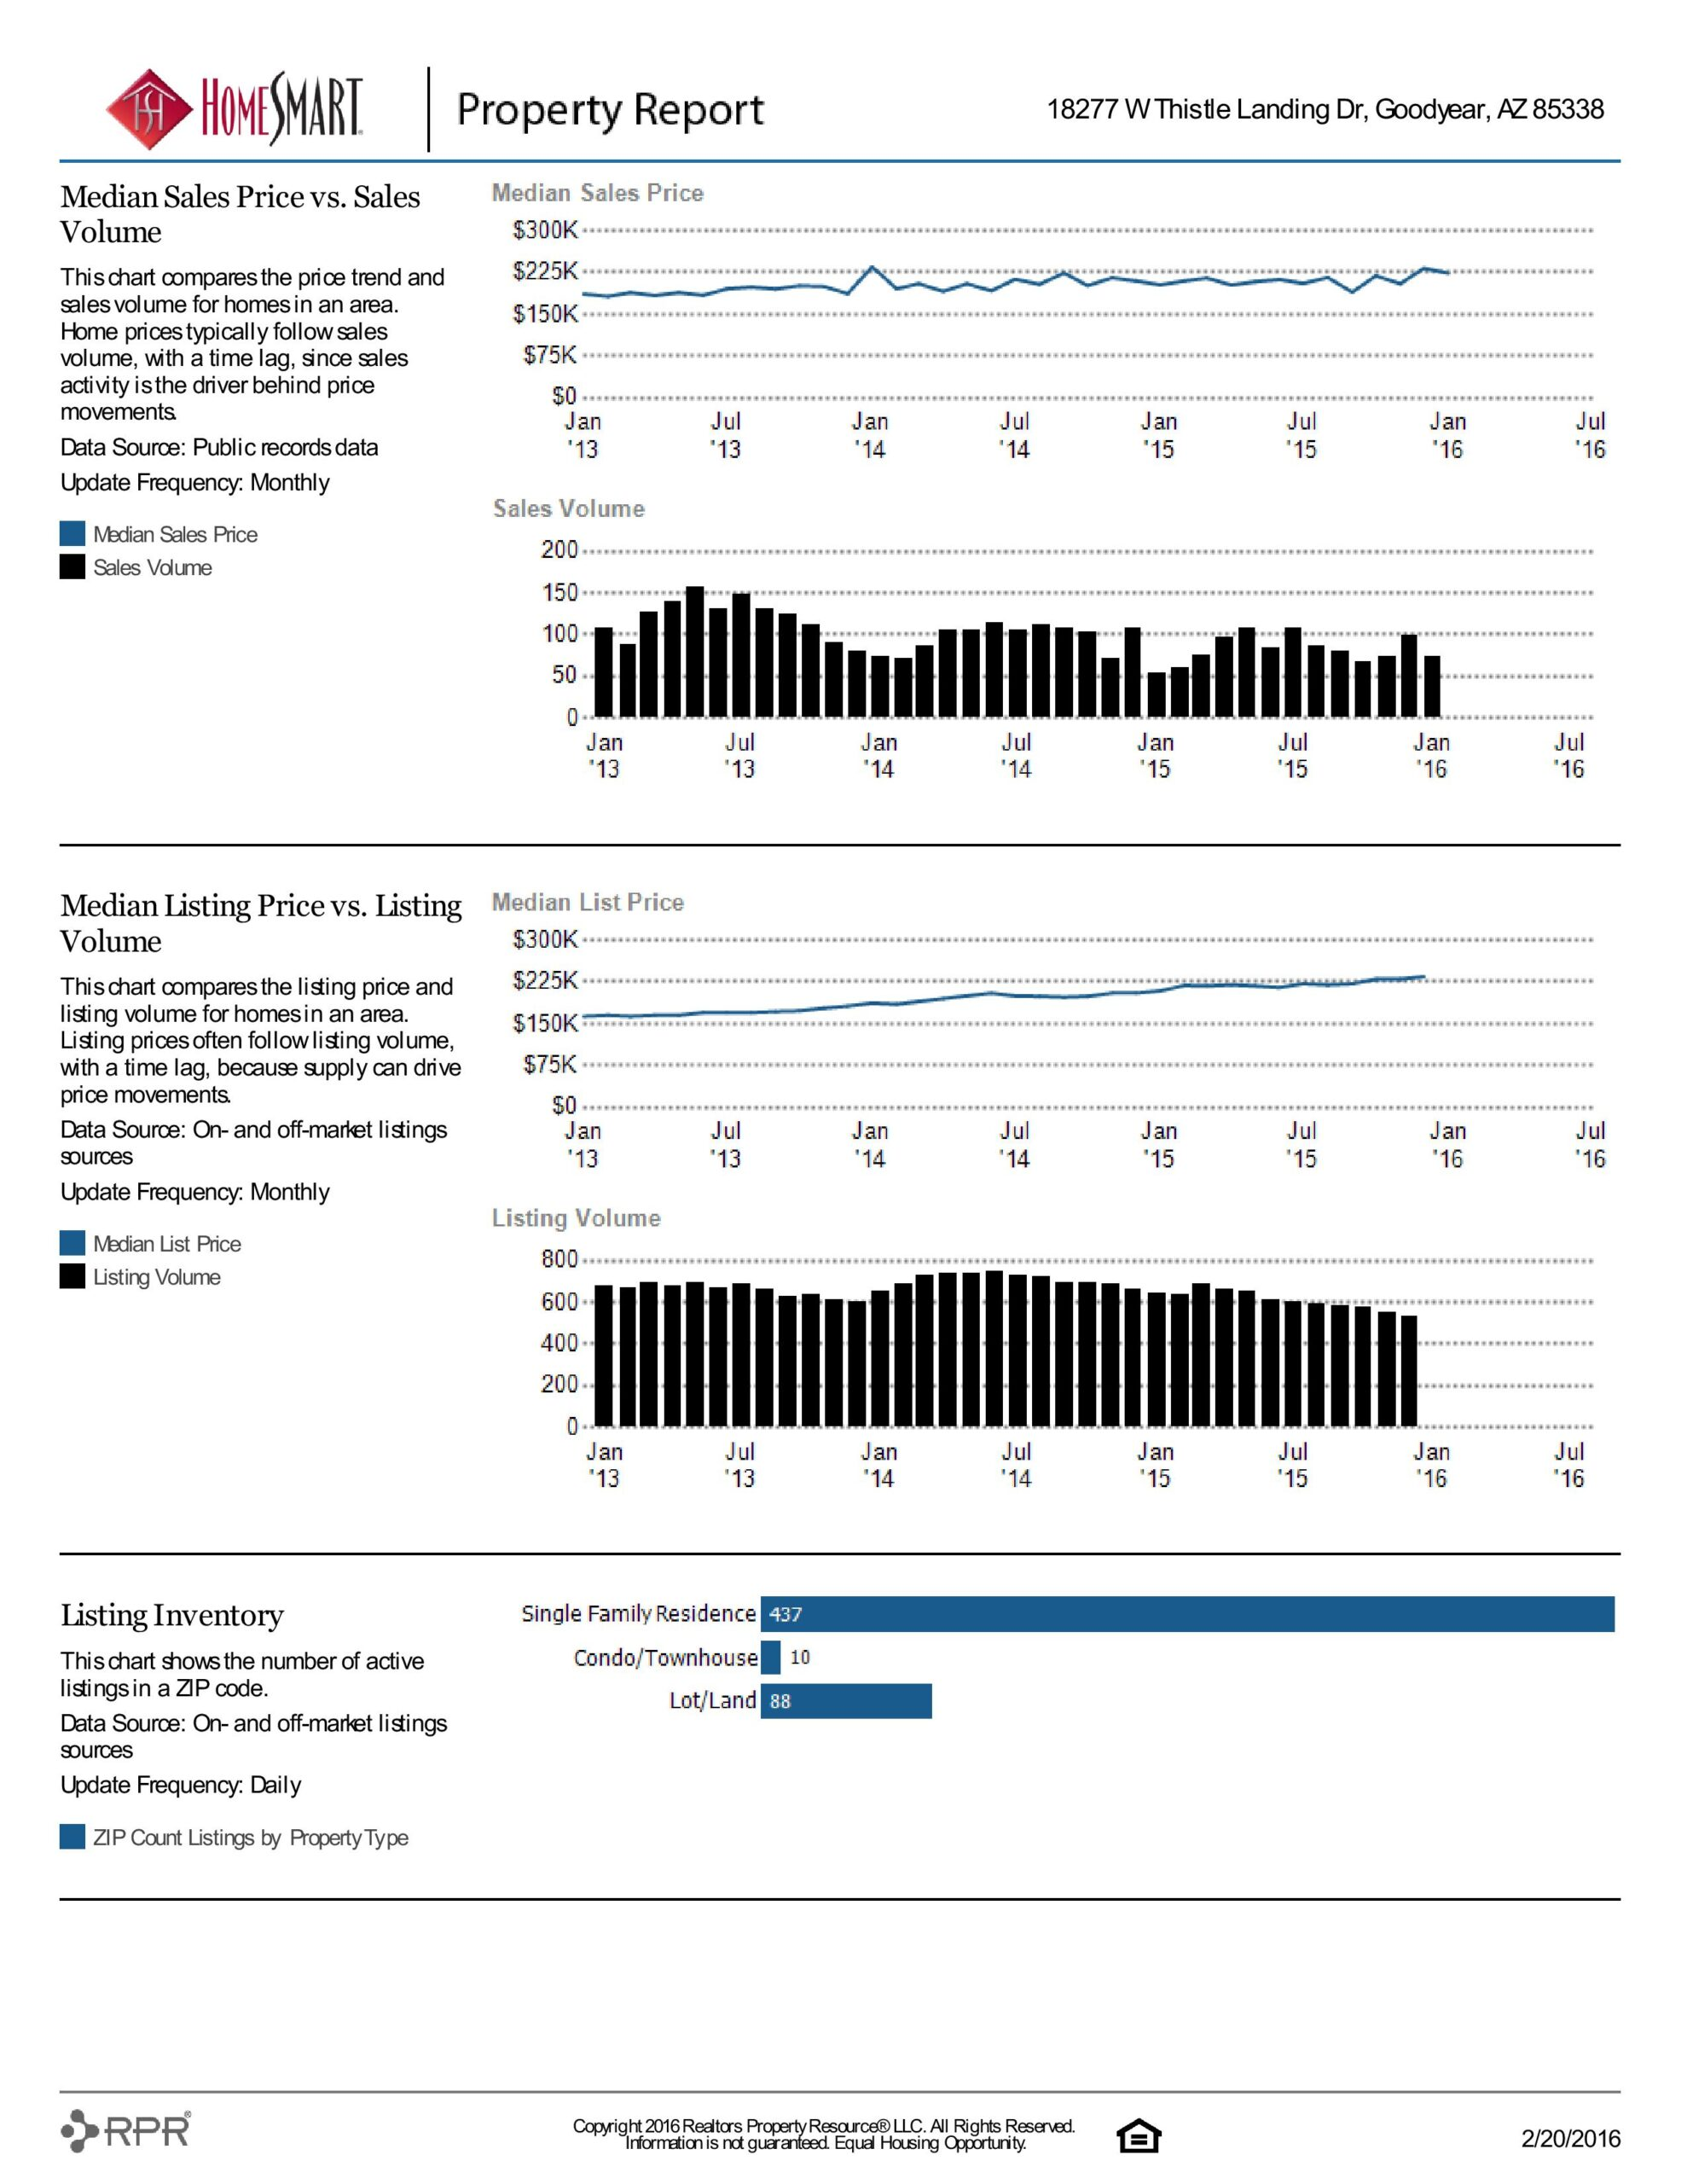 18277 W THISTLE LANDING DR PROPERTY REPORT-page-015